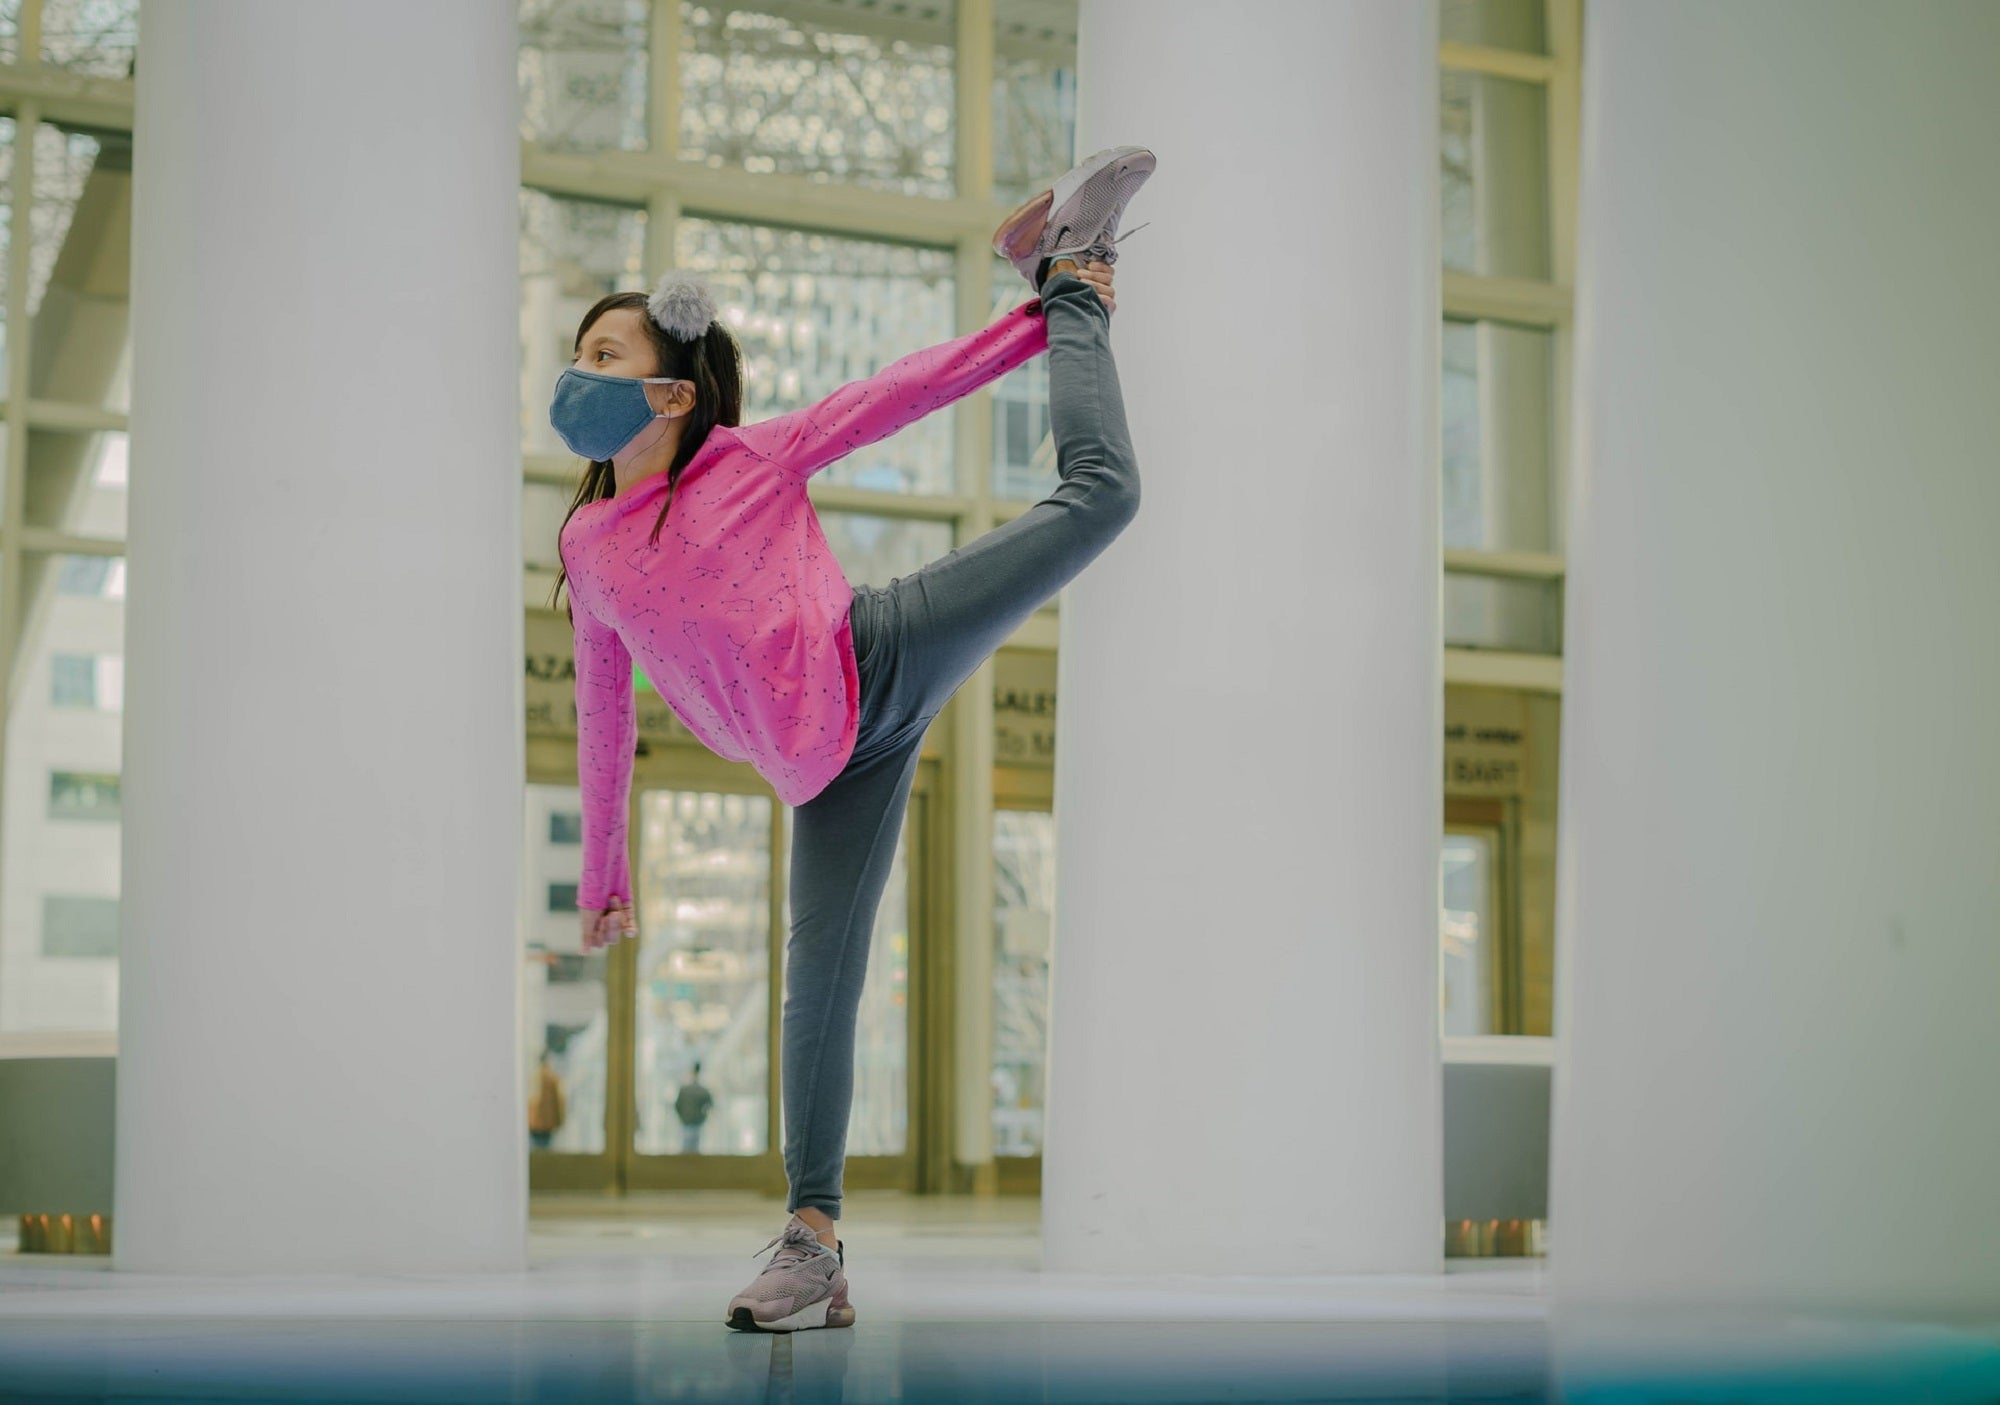 Child in a pink shirt and hair bow wearing a mask and holding a dance pose inside an atrium